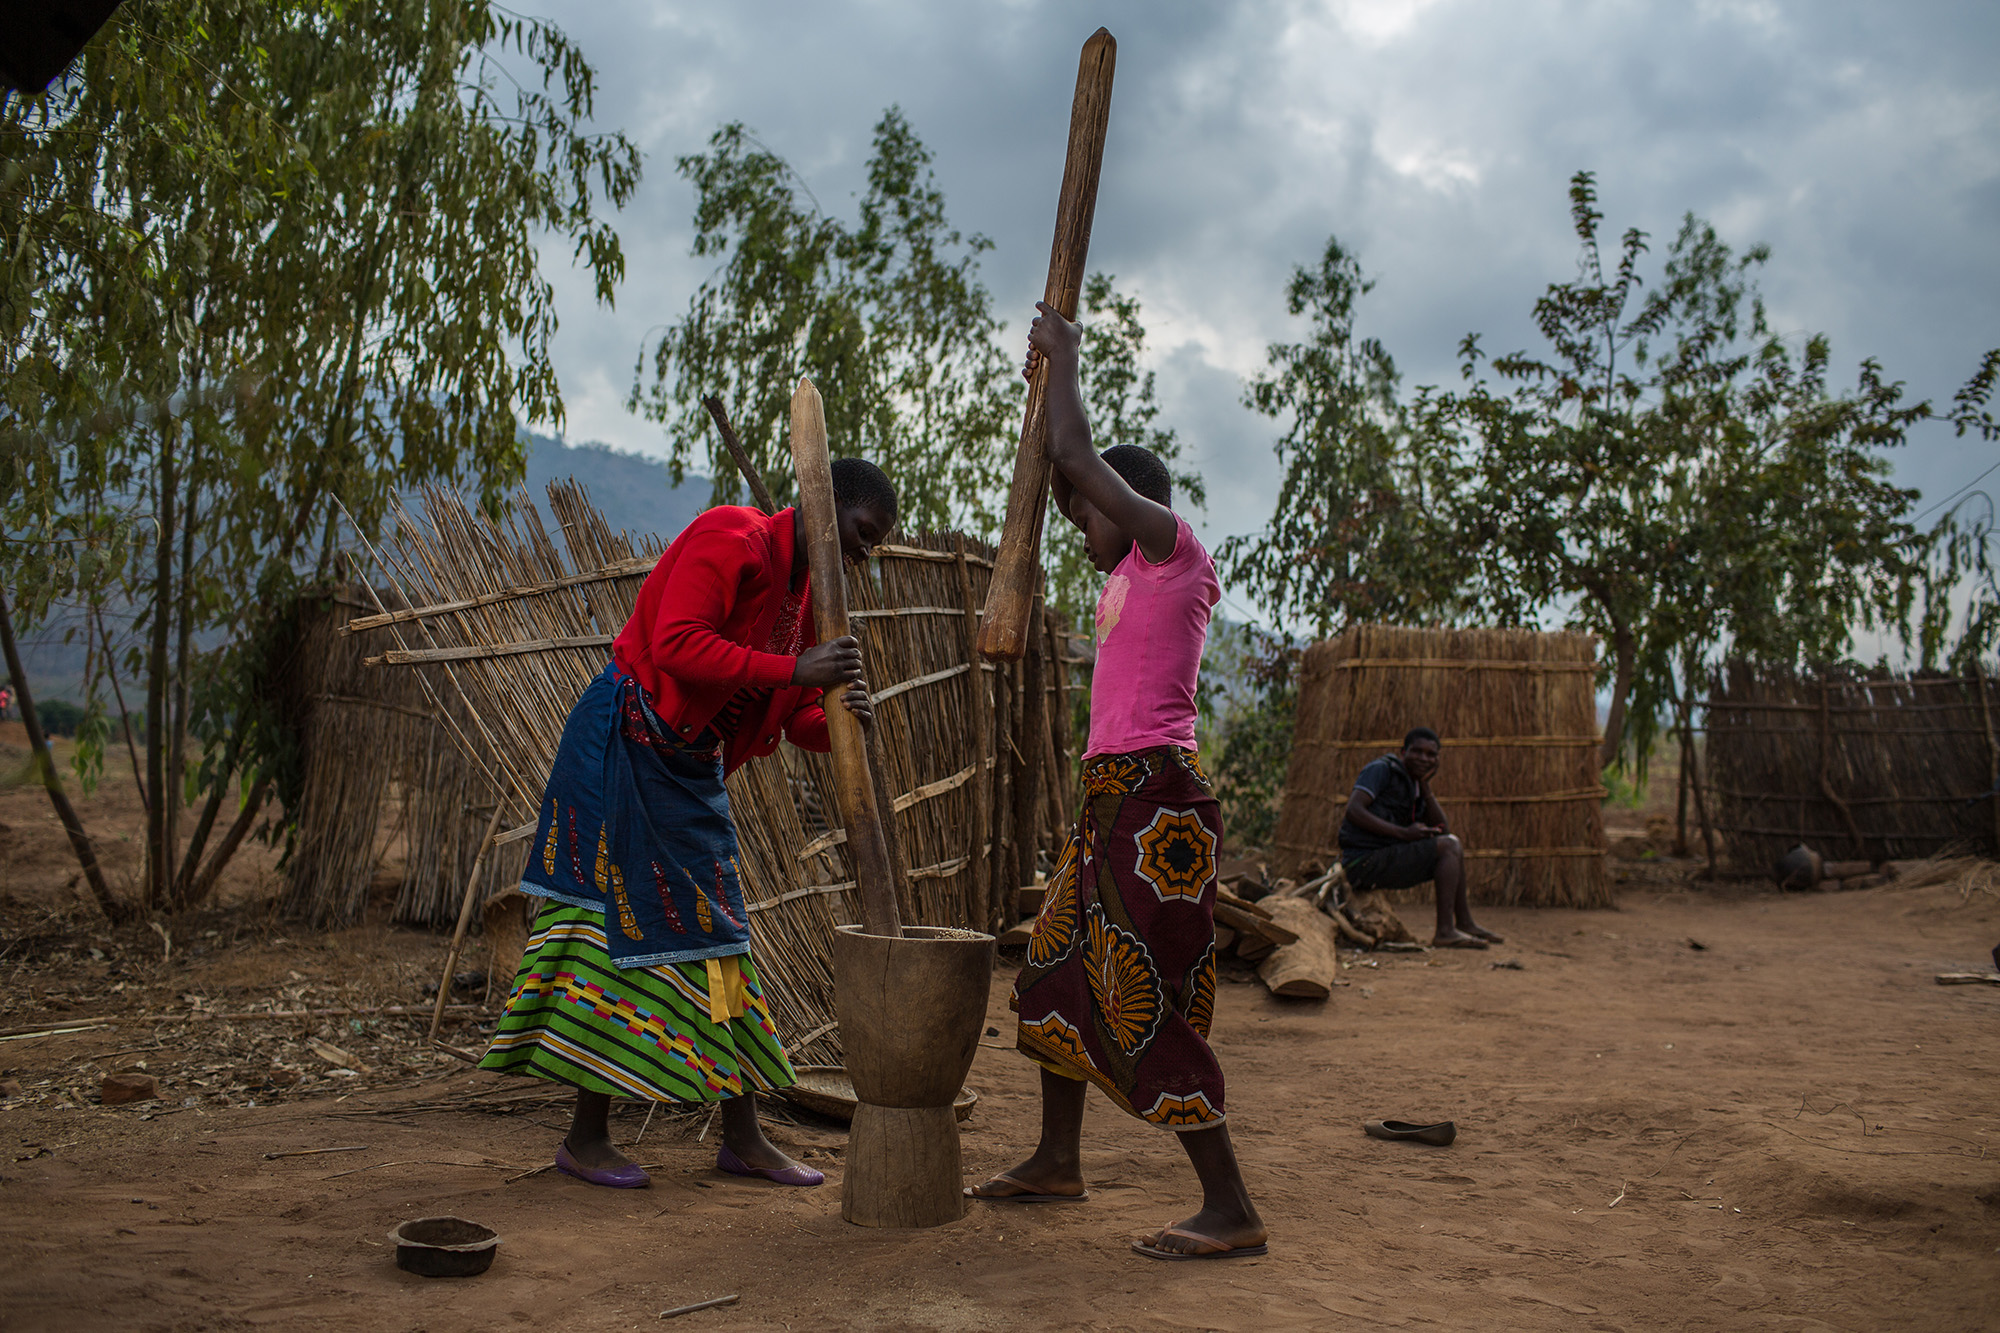 Wilfred's wife, Magrate Nthawani, left, and daughter,Joyce Wilfred, prepare food outside their house.Photo by Morgana Wingard.